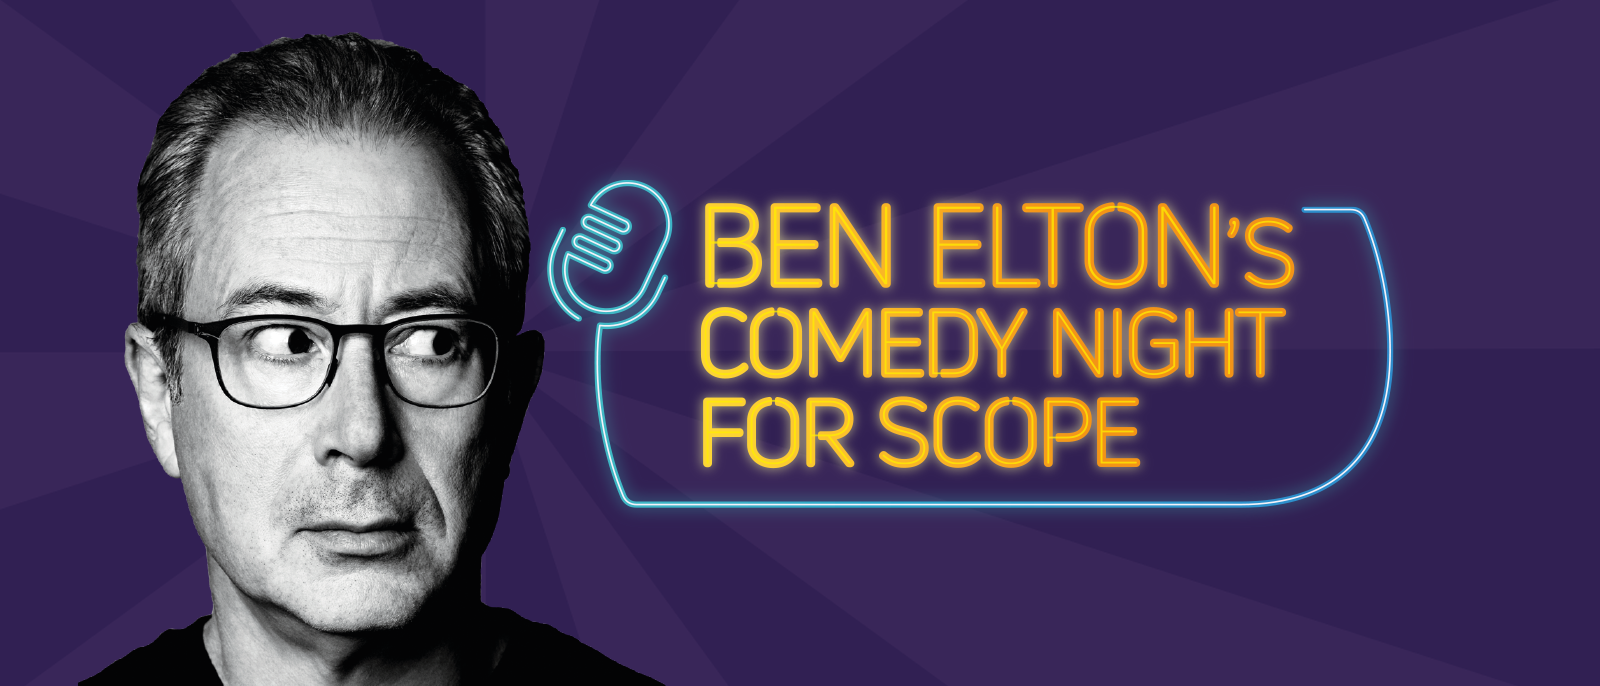 An advertisement for Ben Eltons Comedy Night for Scope